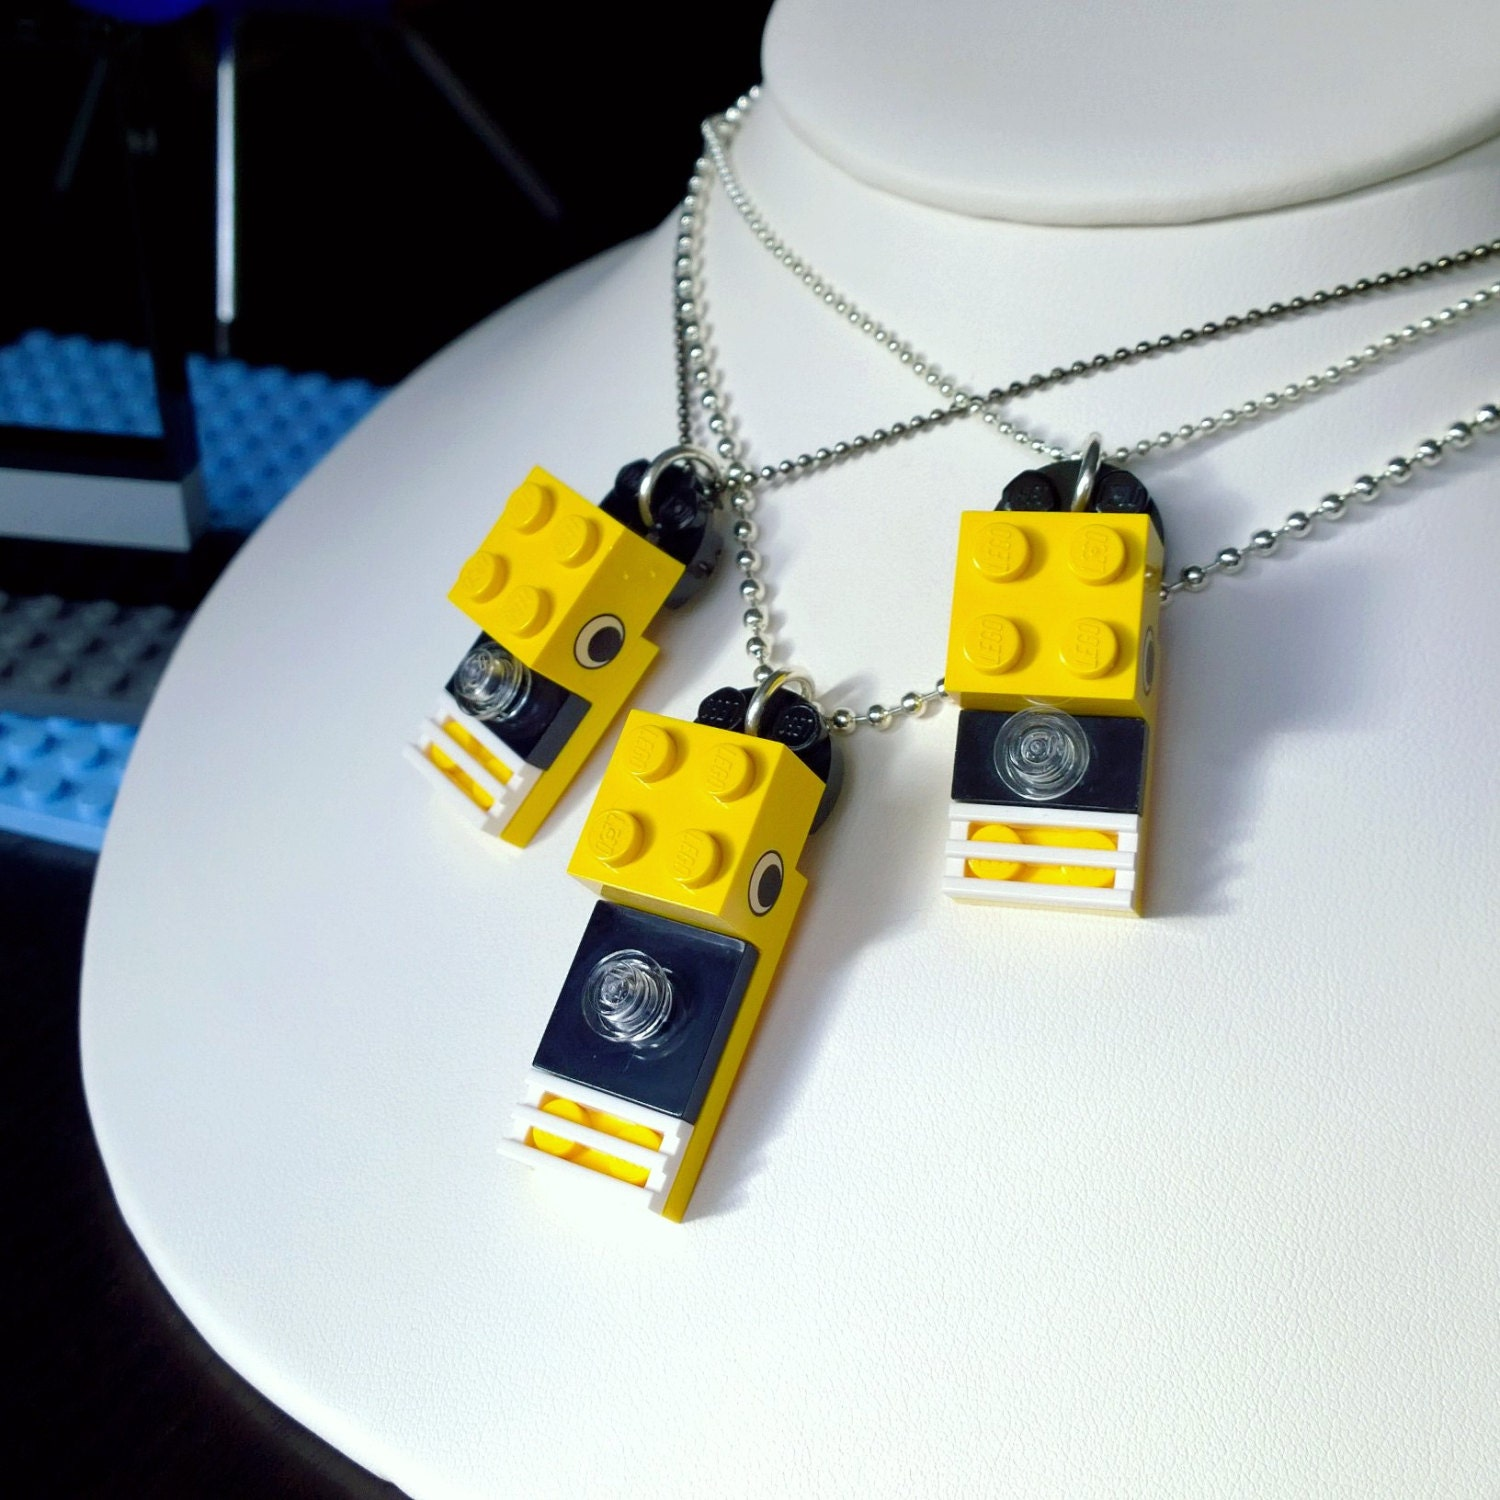 buzzy lego necklace